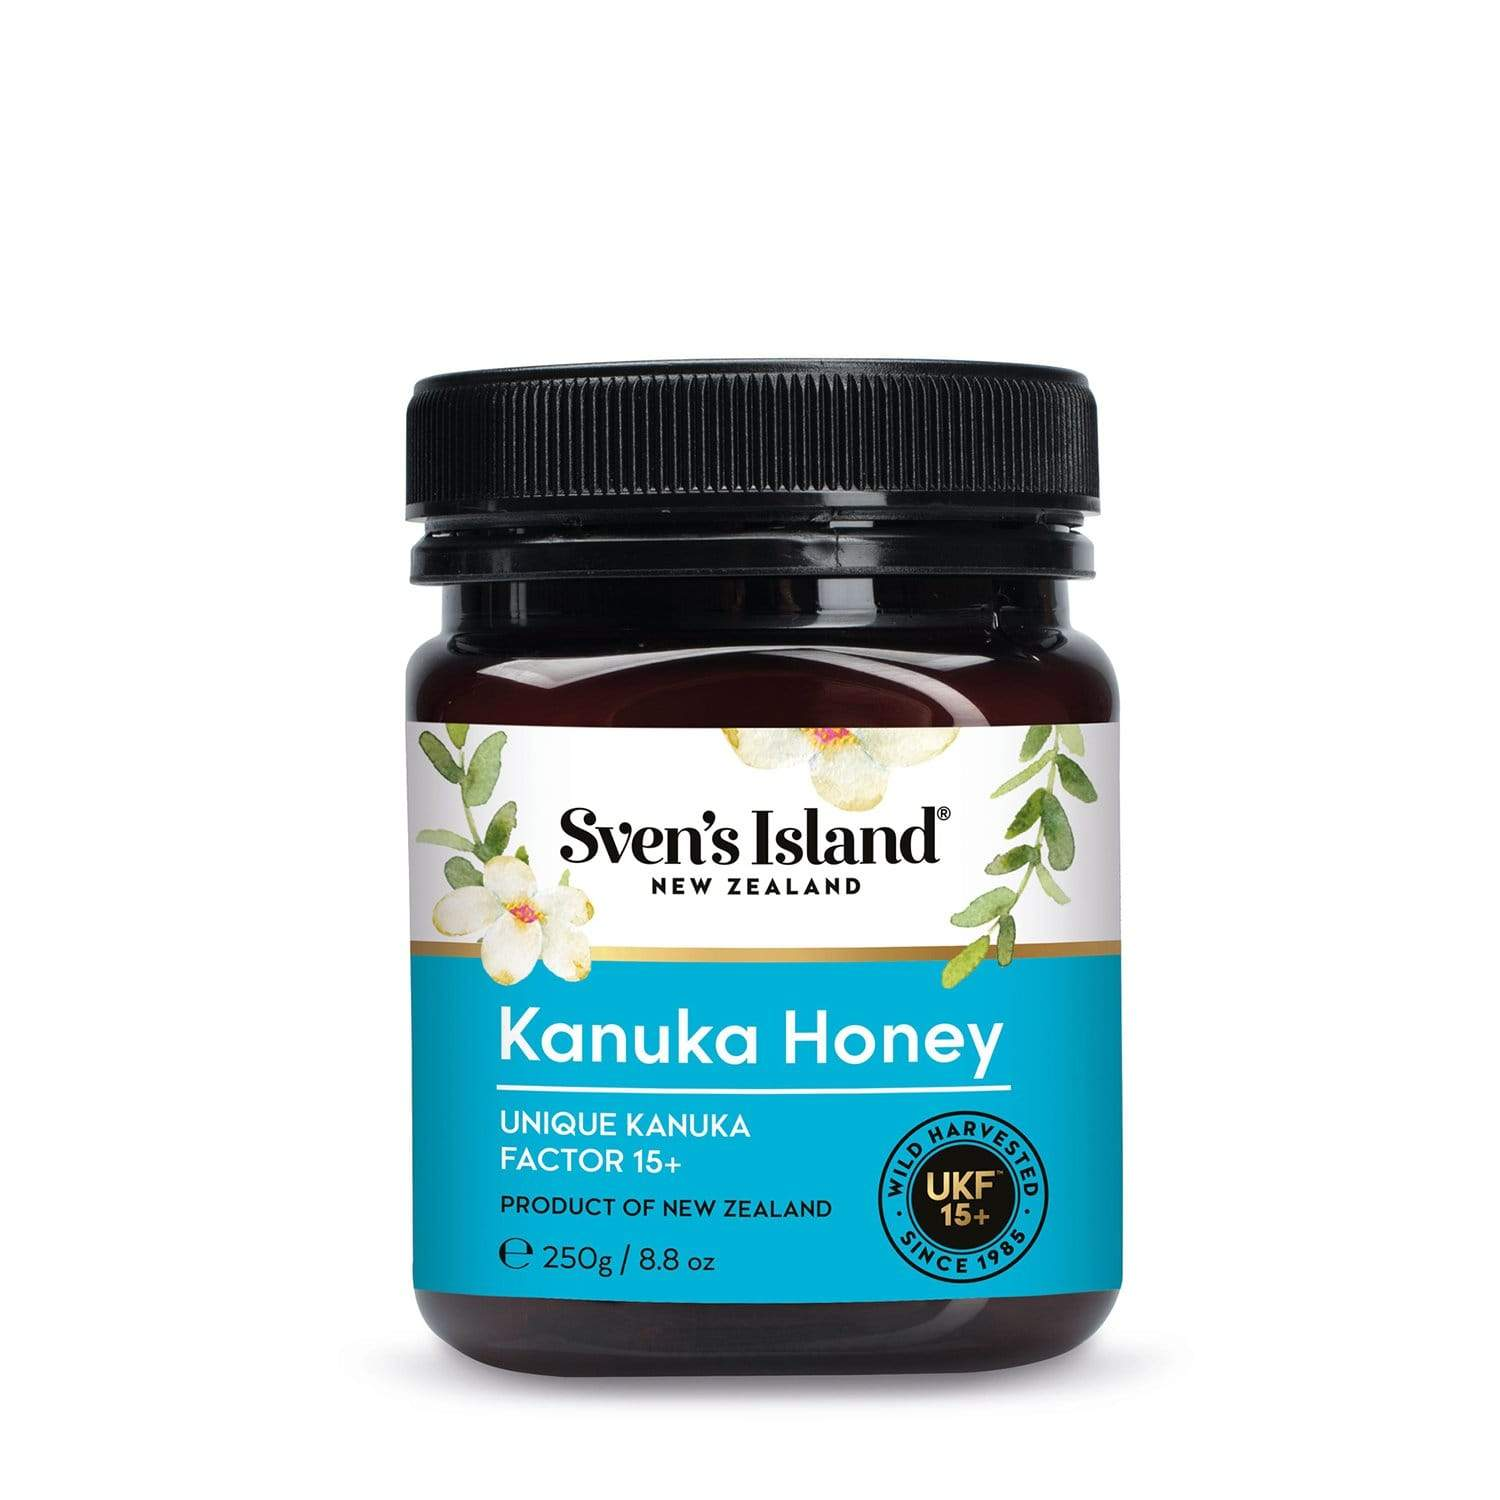 Kanuka Honey UKF 15+